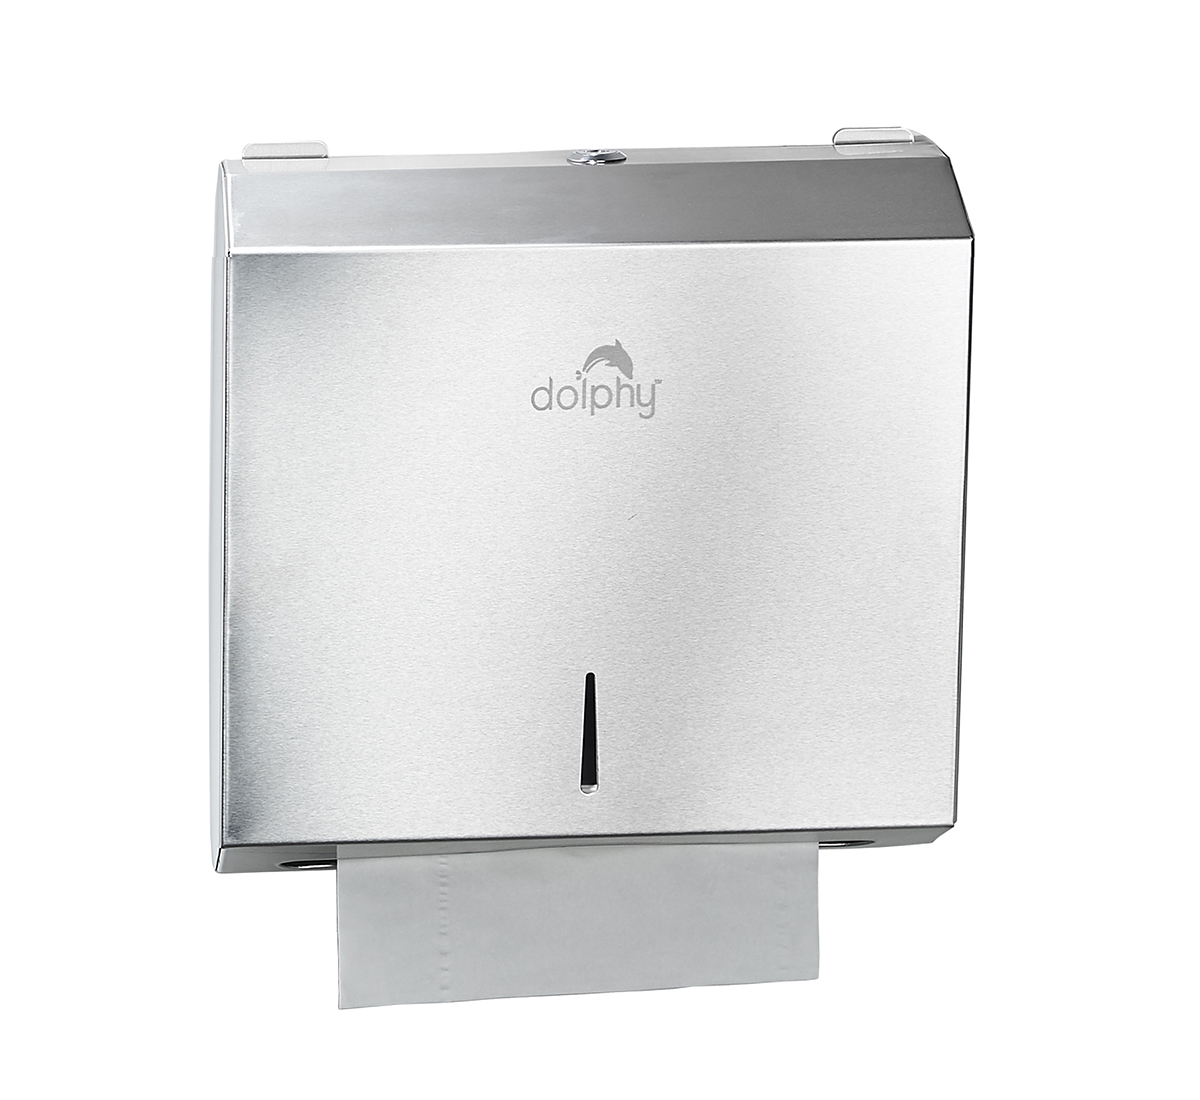 304 Stainless Steel Multifold Towel Paper Dispenser